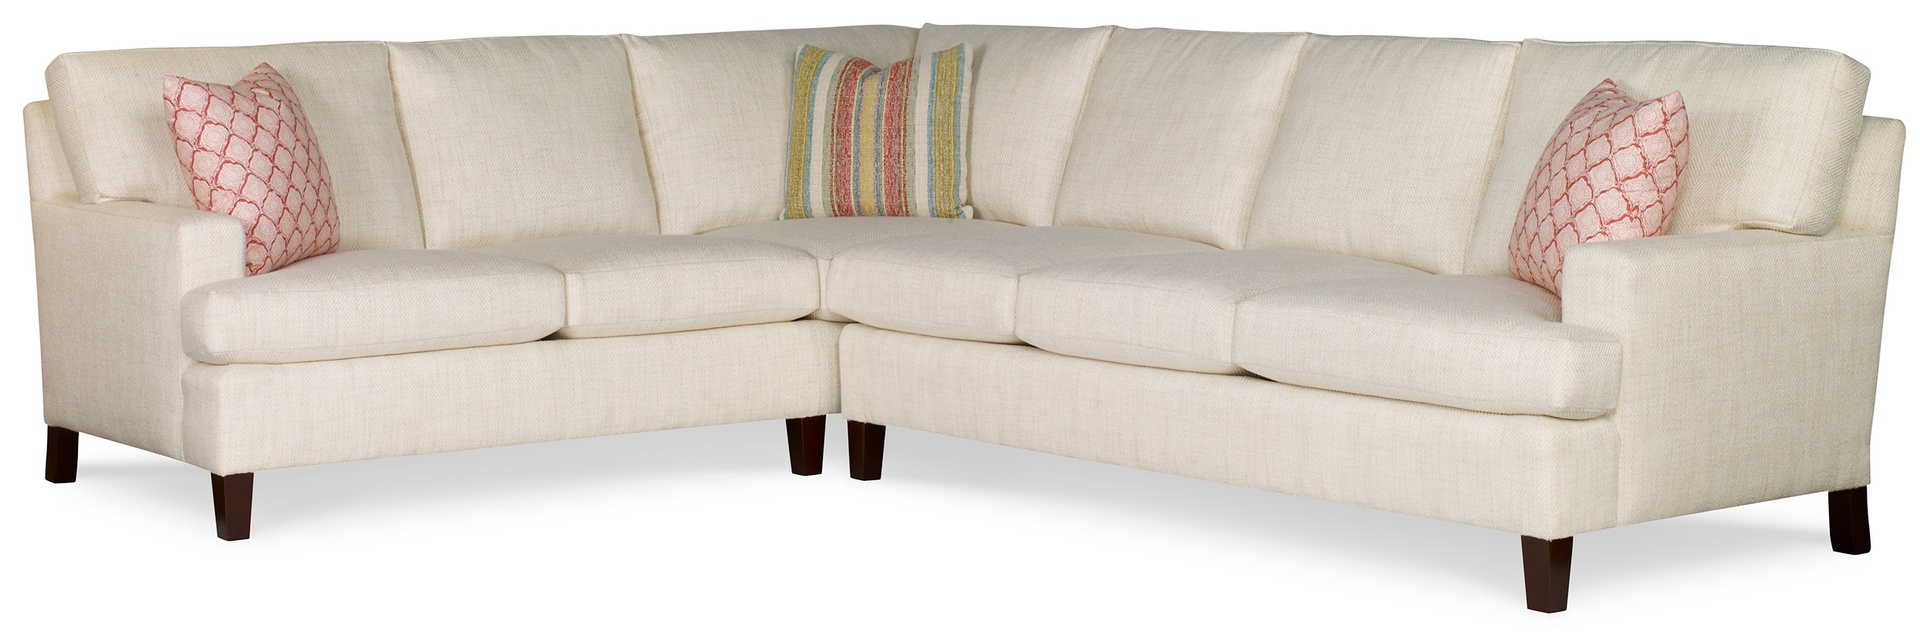 675 sectional